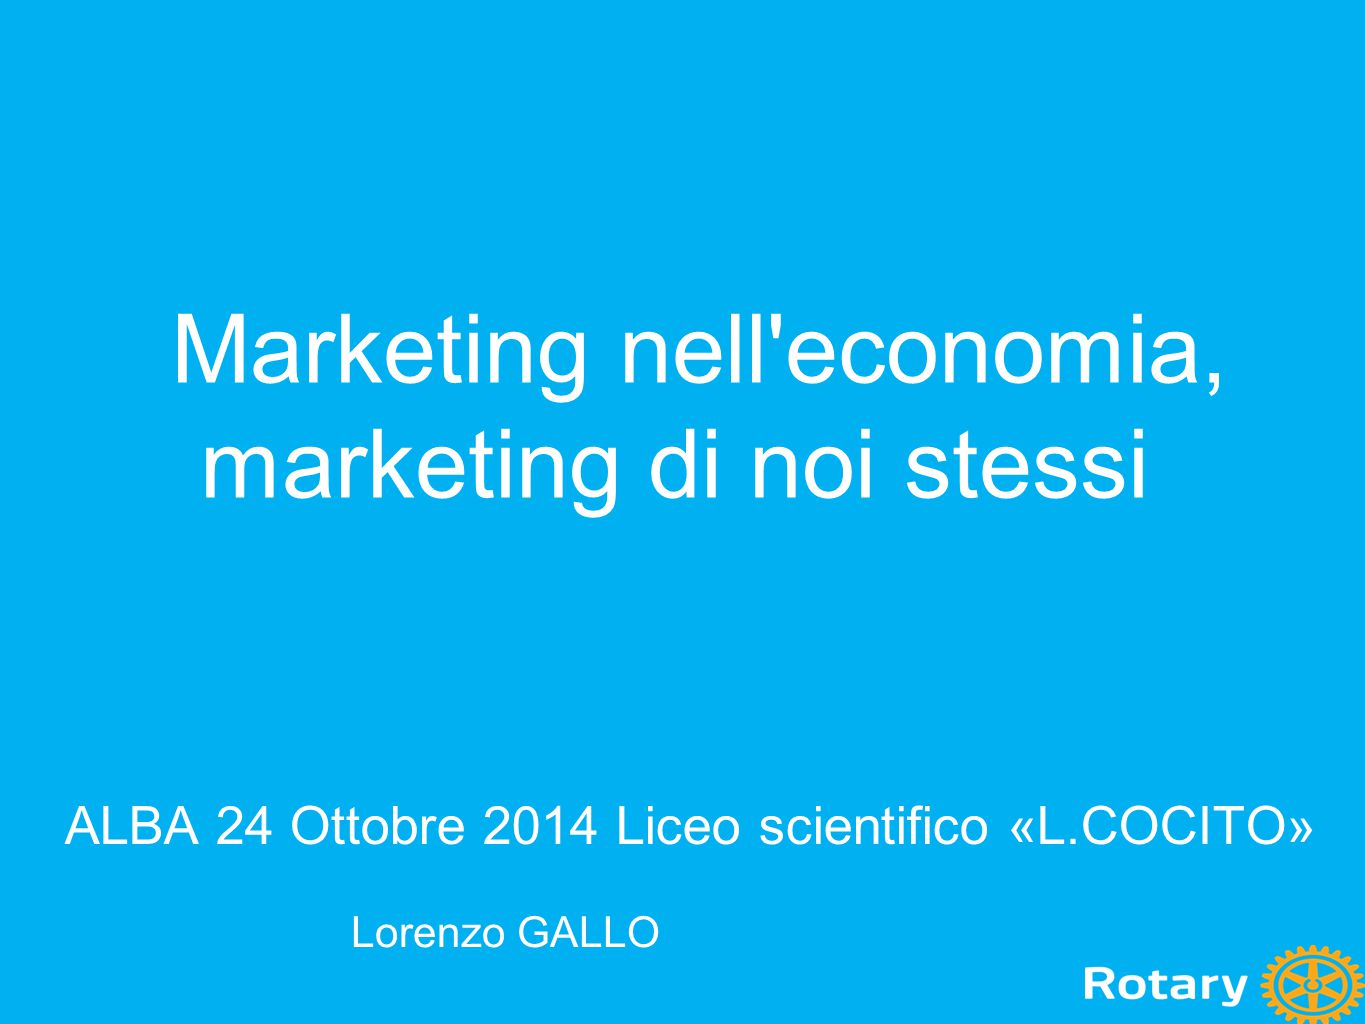 Marketing nell economia, marketing di noi stessi